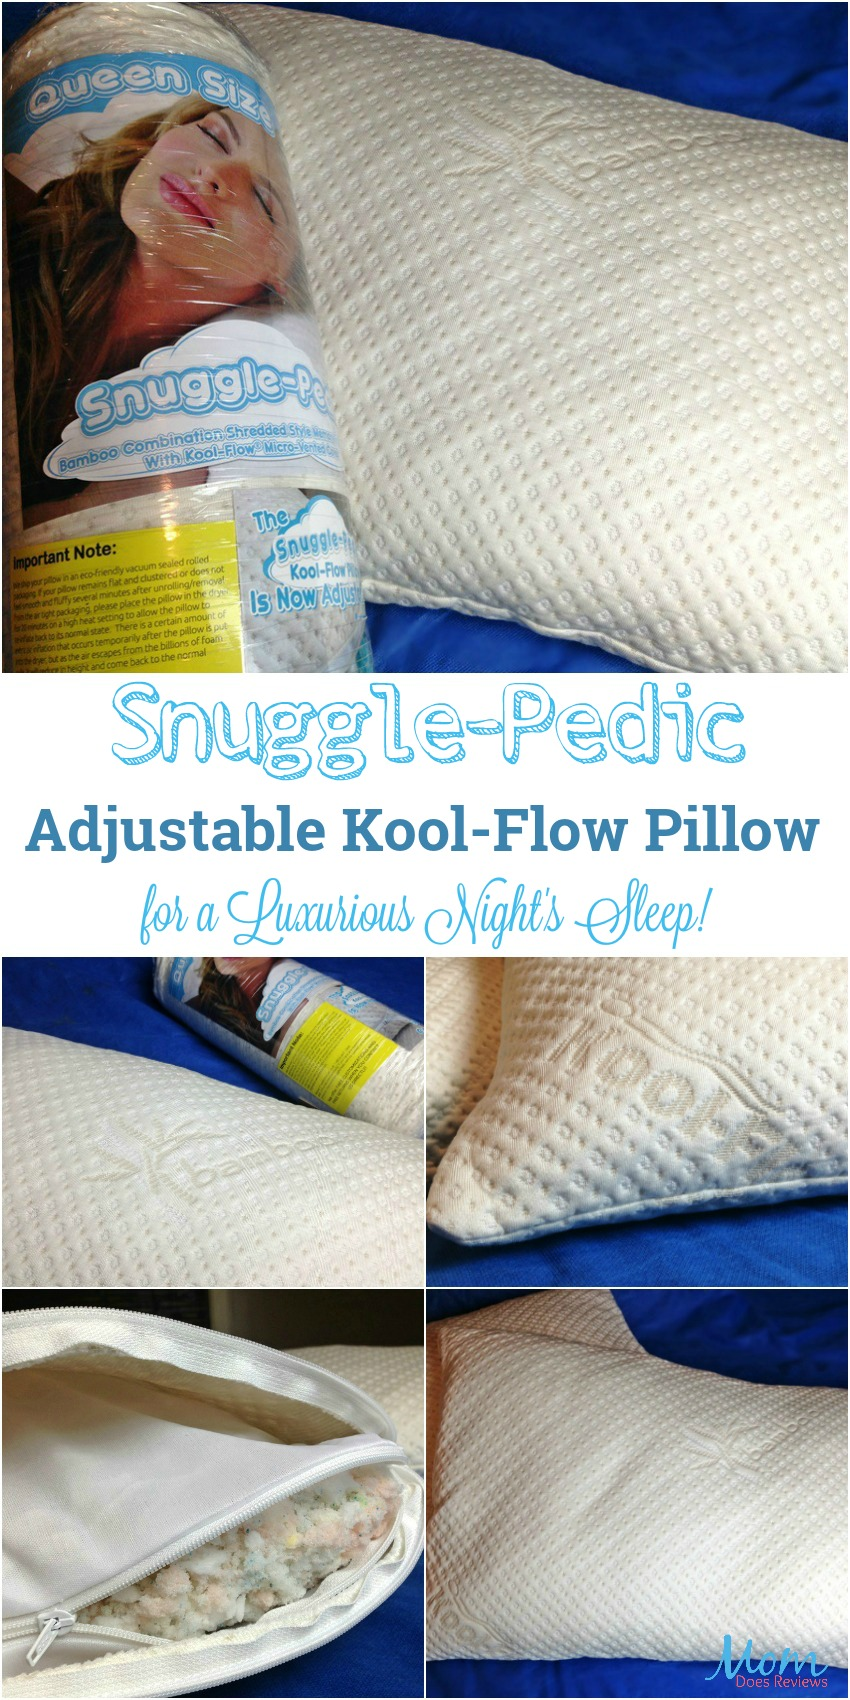 Snuggle-Pedic Adjustable Kool-Flow Pillow for a Luxurious Night's Sleep!